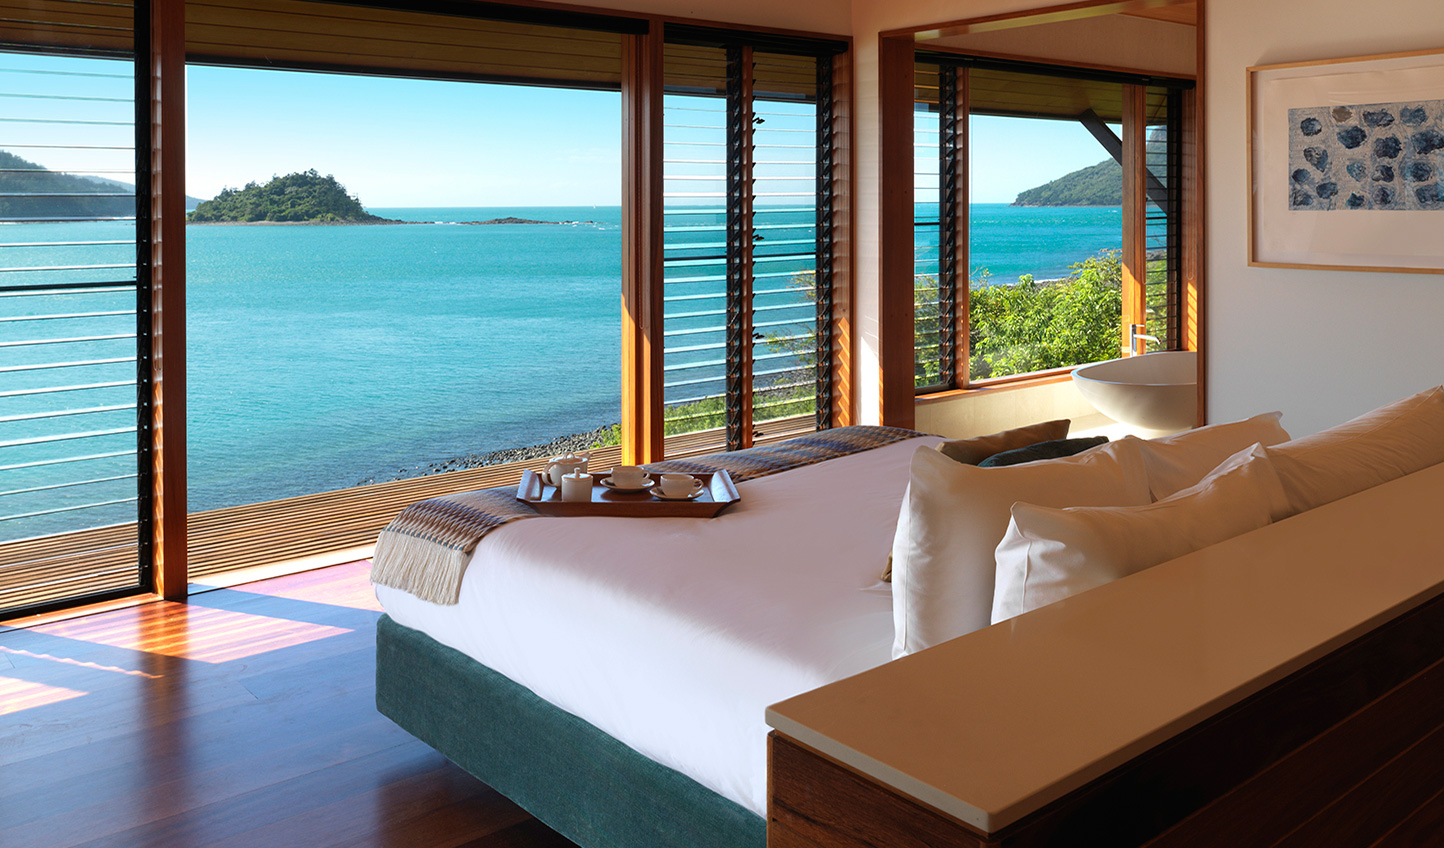 Wake up to breathtaking views out to the Great Barrier Reef